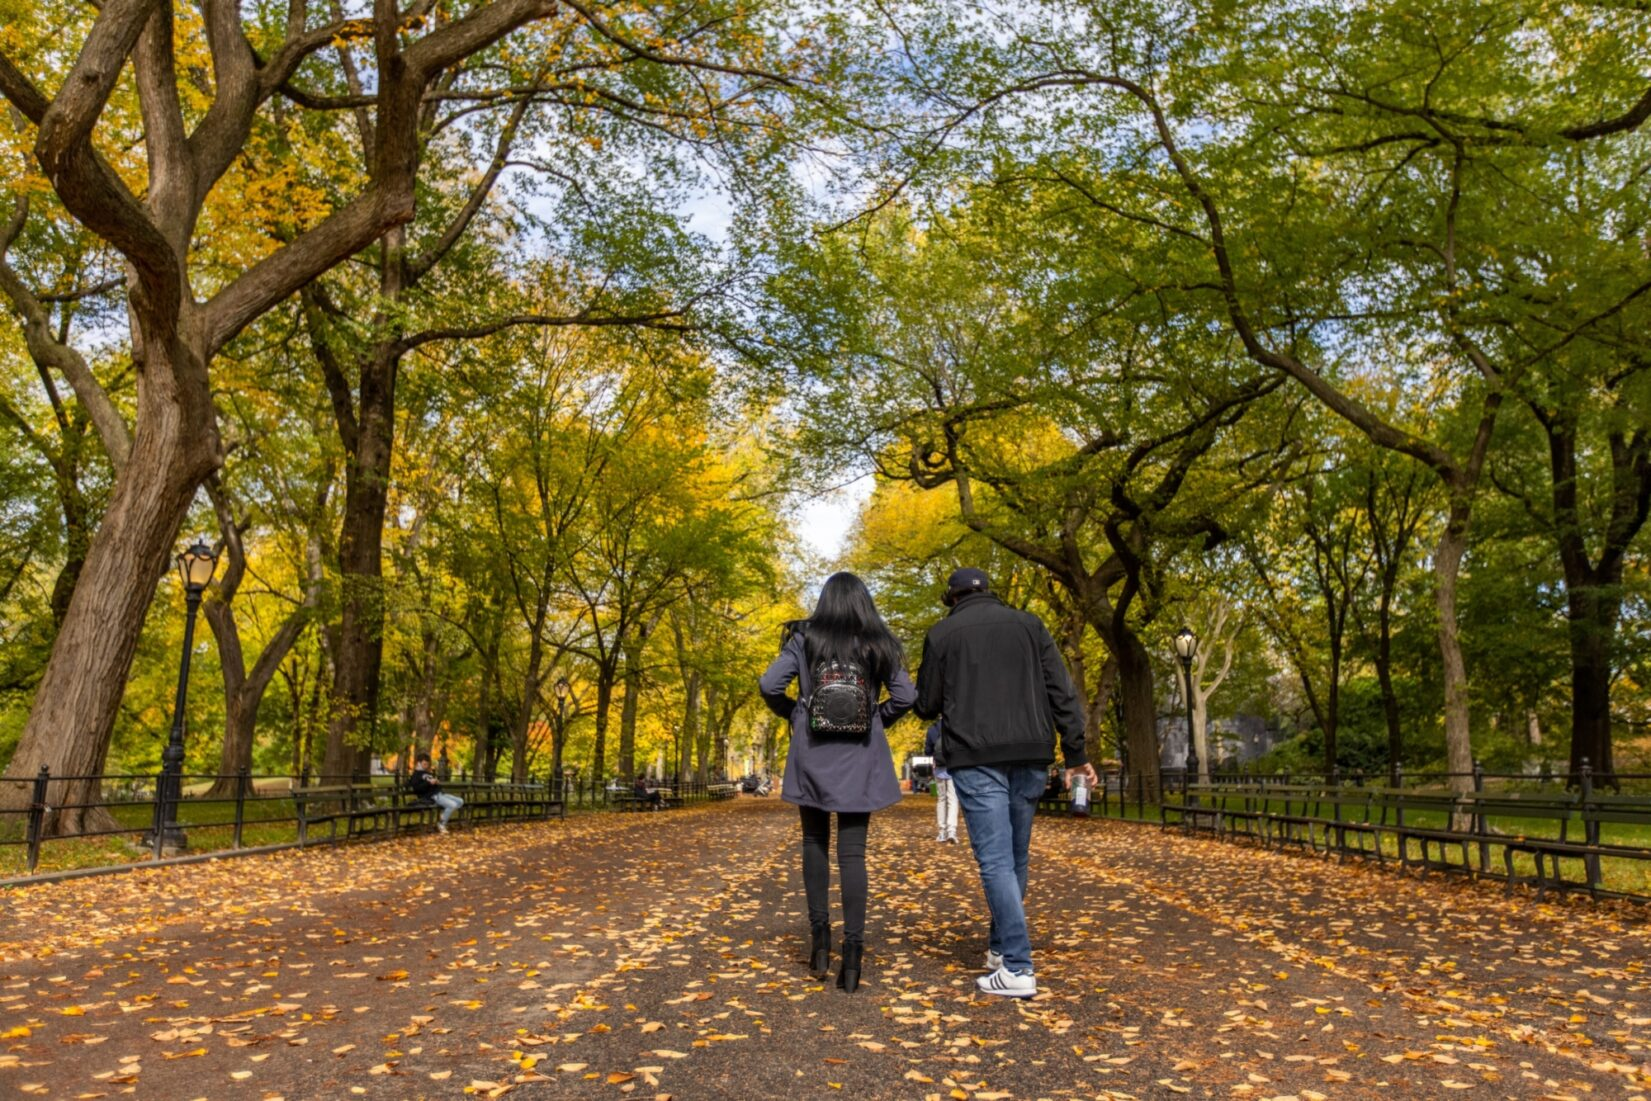 A couple stroll down the Mall over fallen leaves and under branches of fall foliage